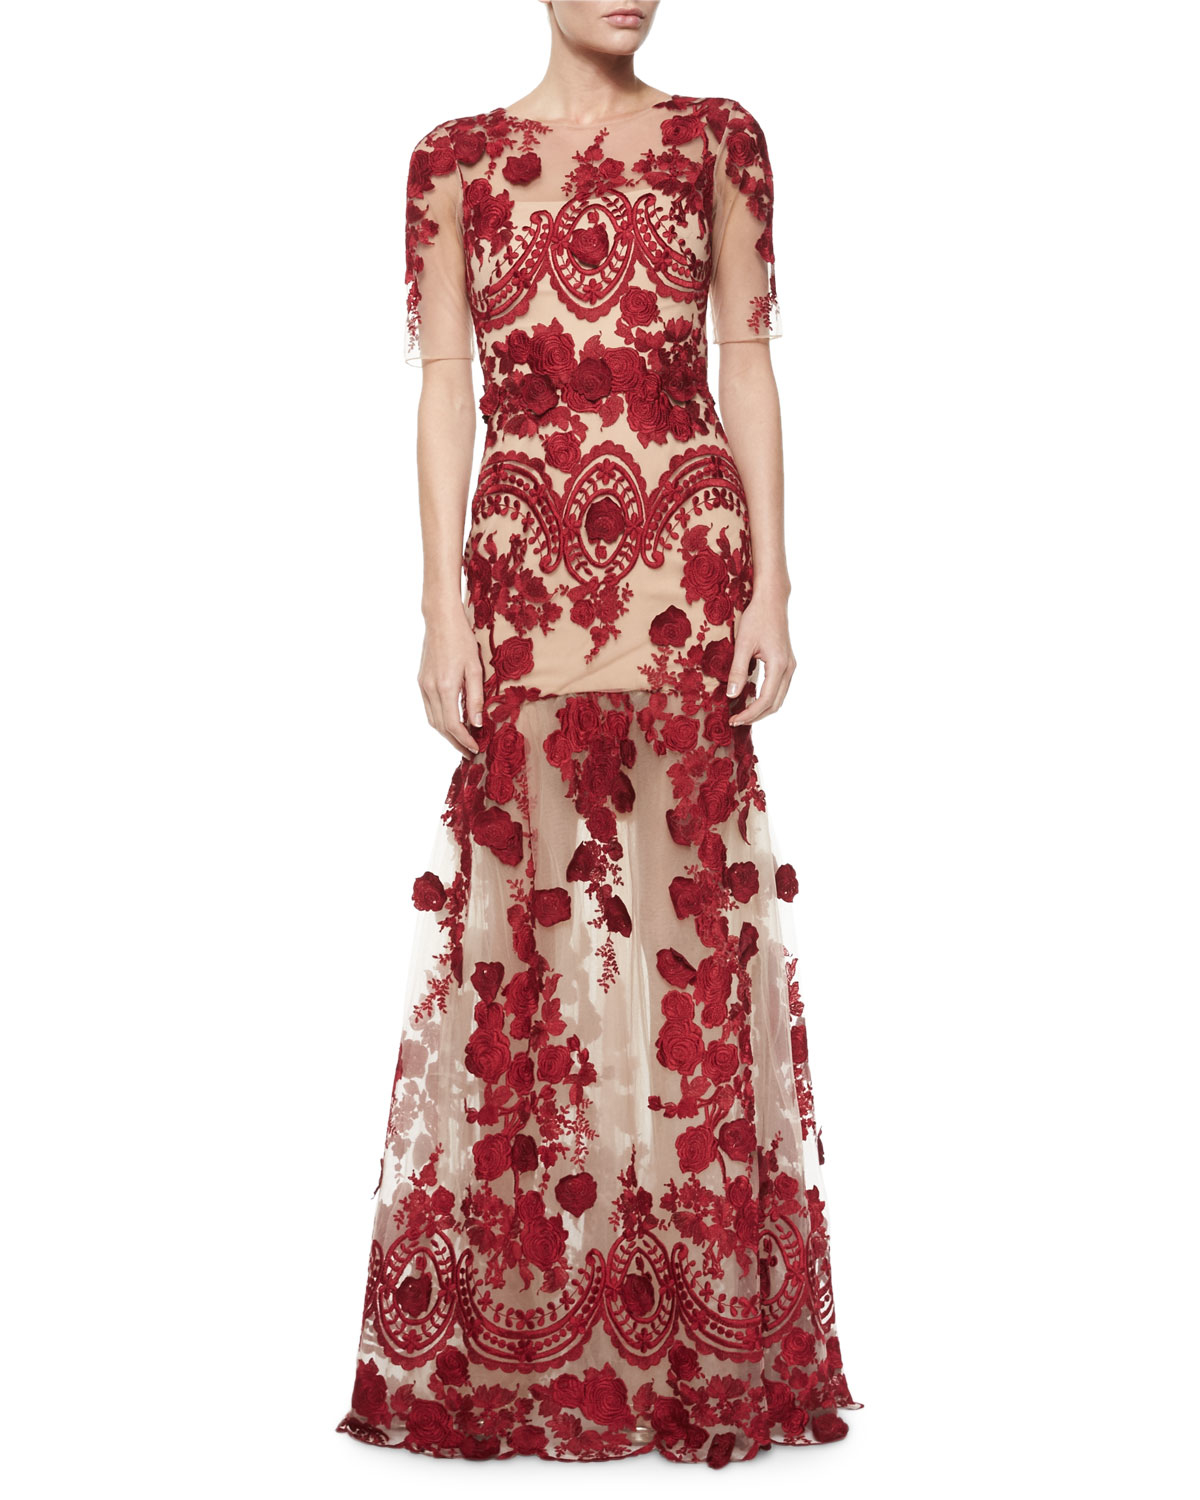 66db213c1d0 Marchesa notte Half-sleeve Floral-applique Gown in Red - Lyst